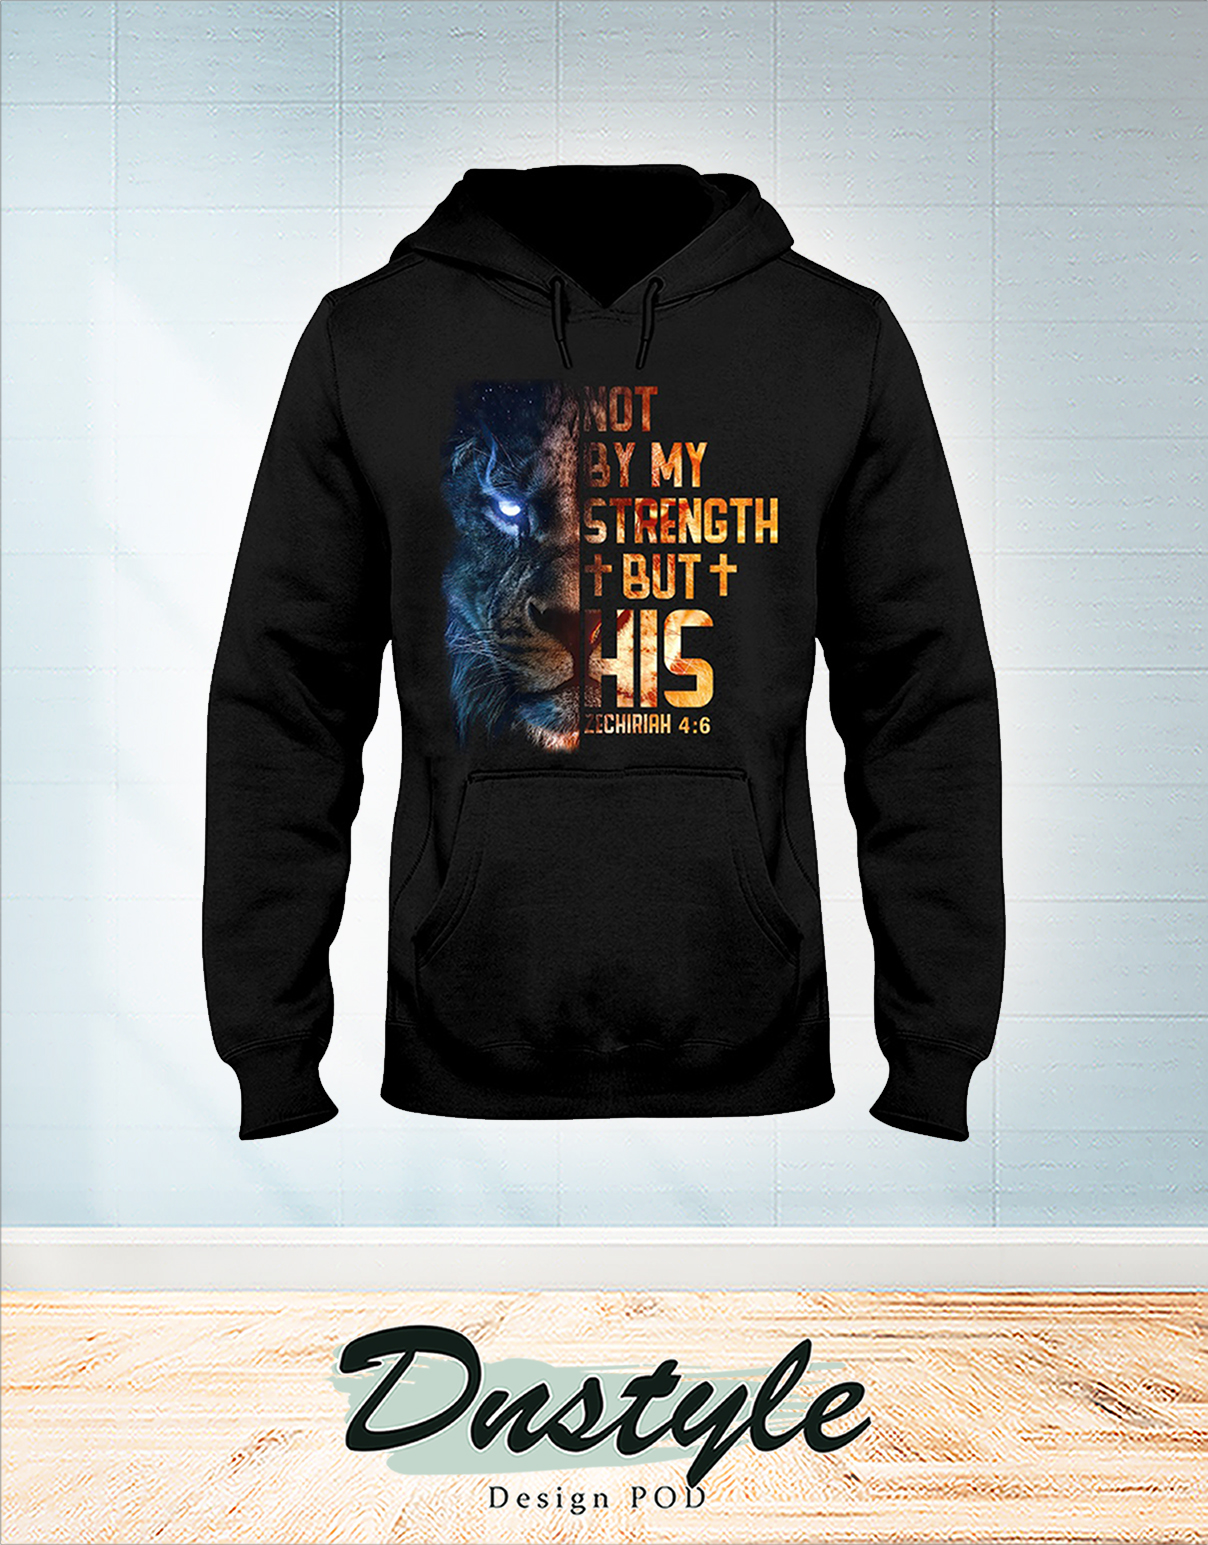 Lion not by my strength but his zechariah 4 6 hoodie